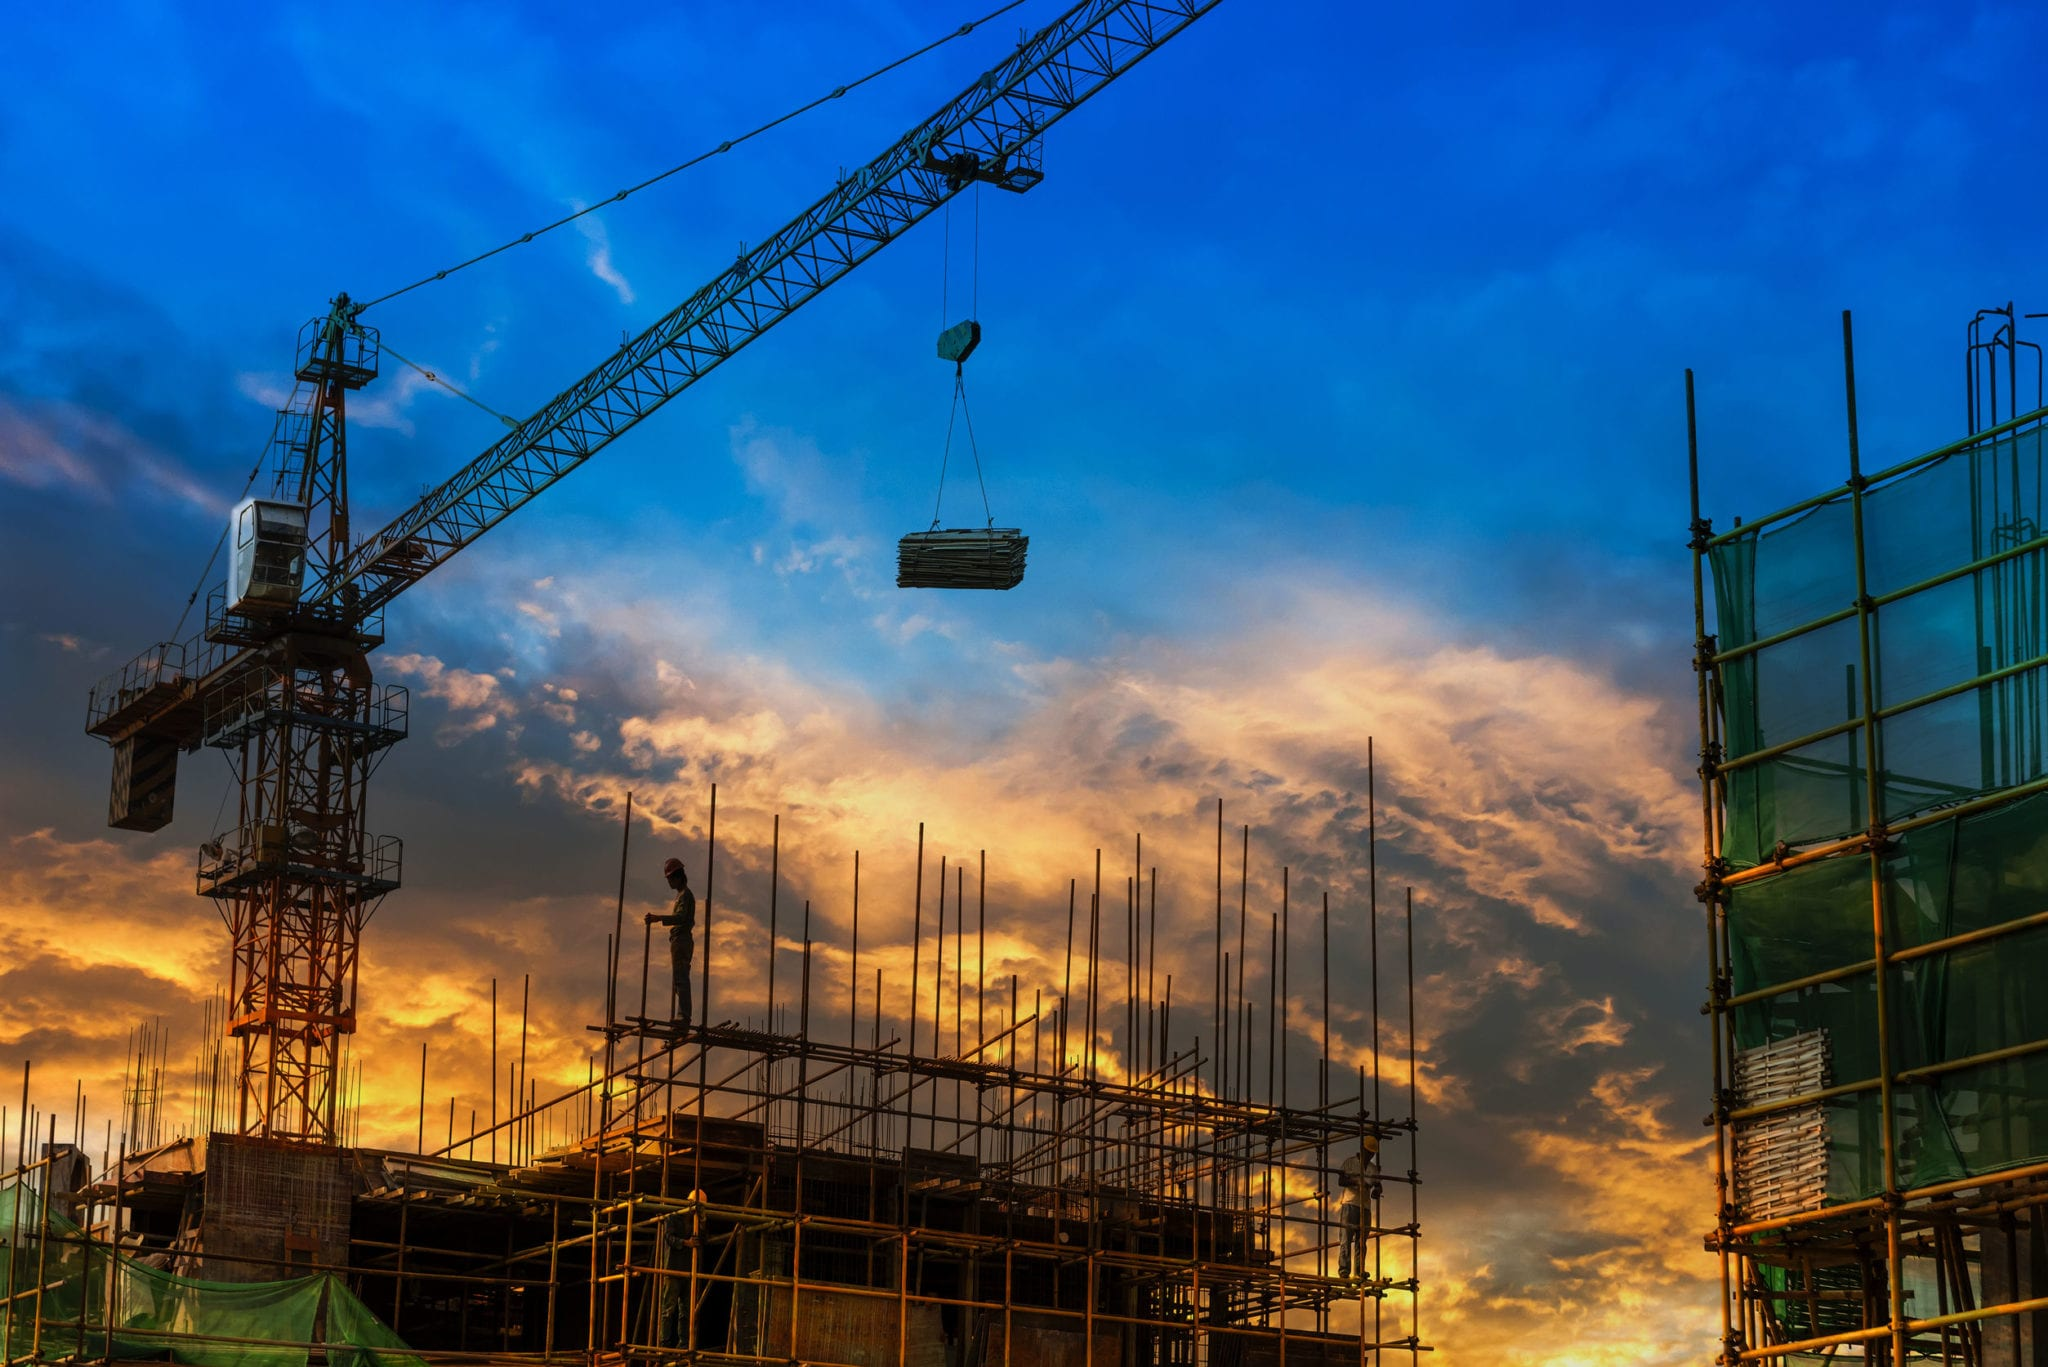 Deadly Construction Cranes: Is Texas Doing Anything About Them